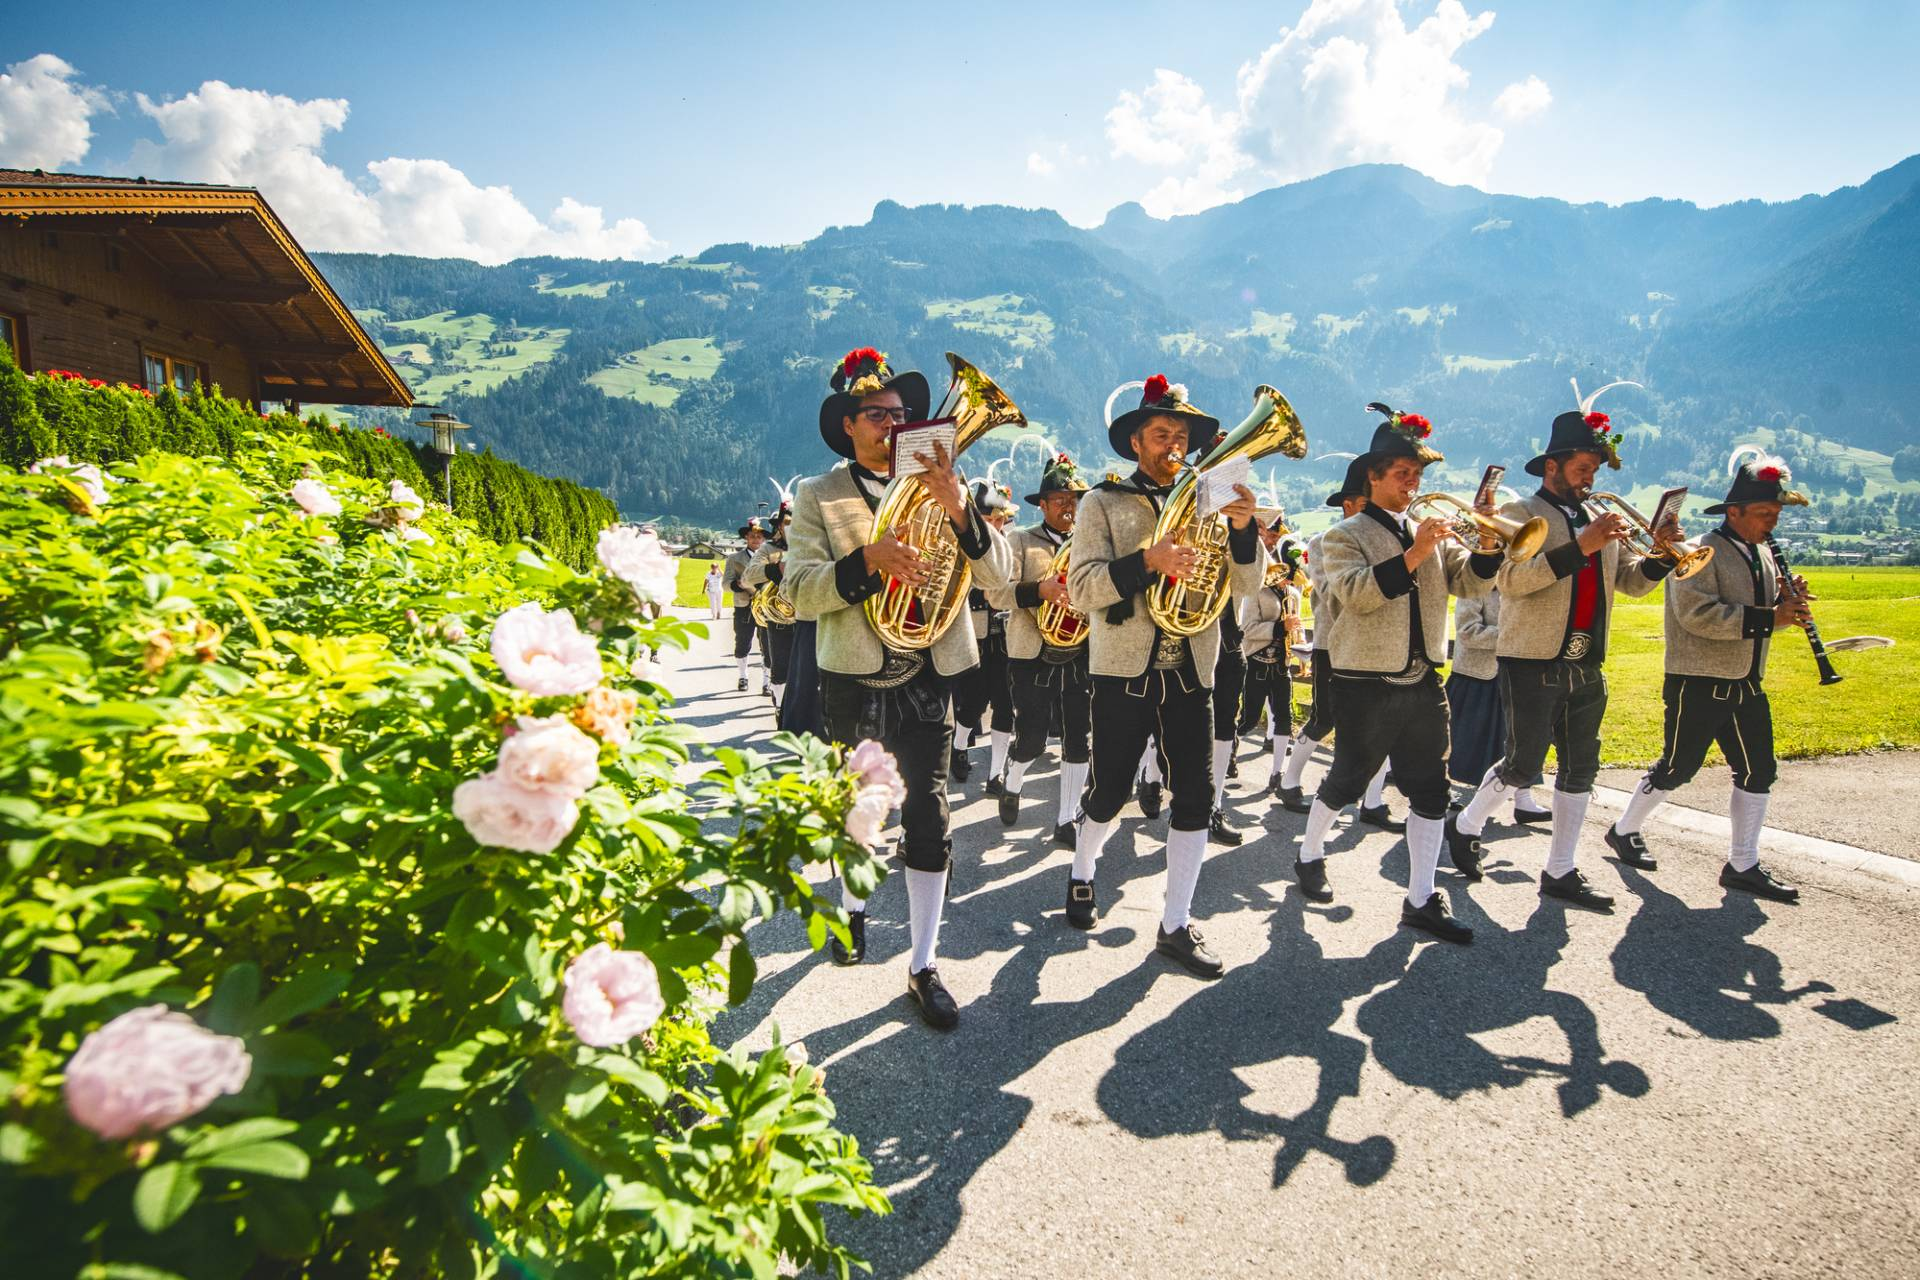 Traditional brass band group playing music and marching